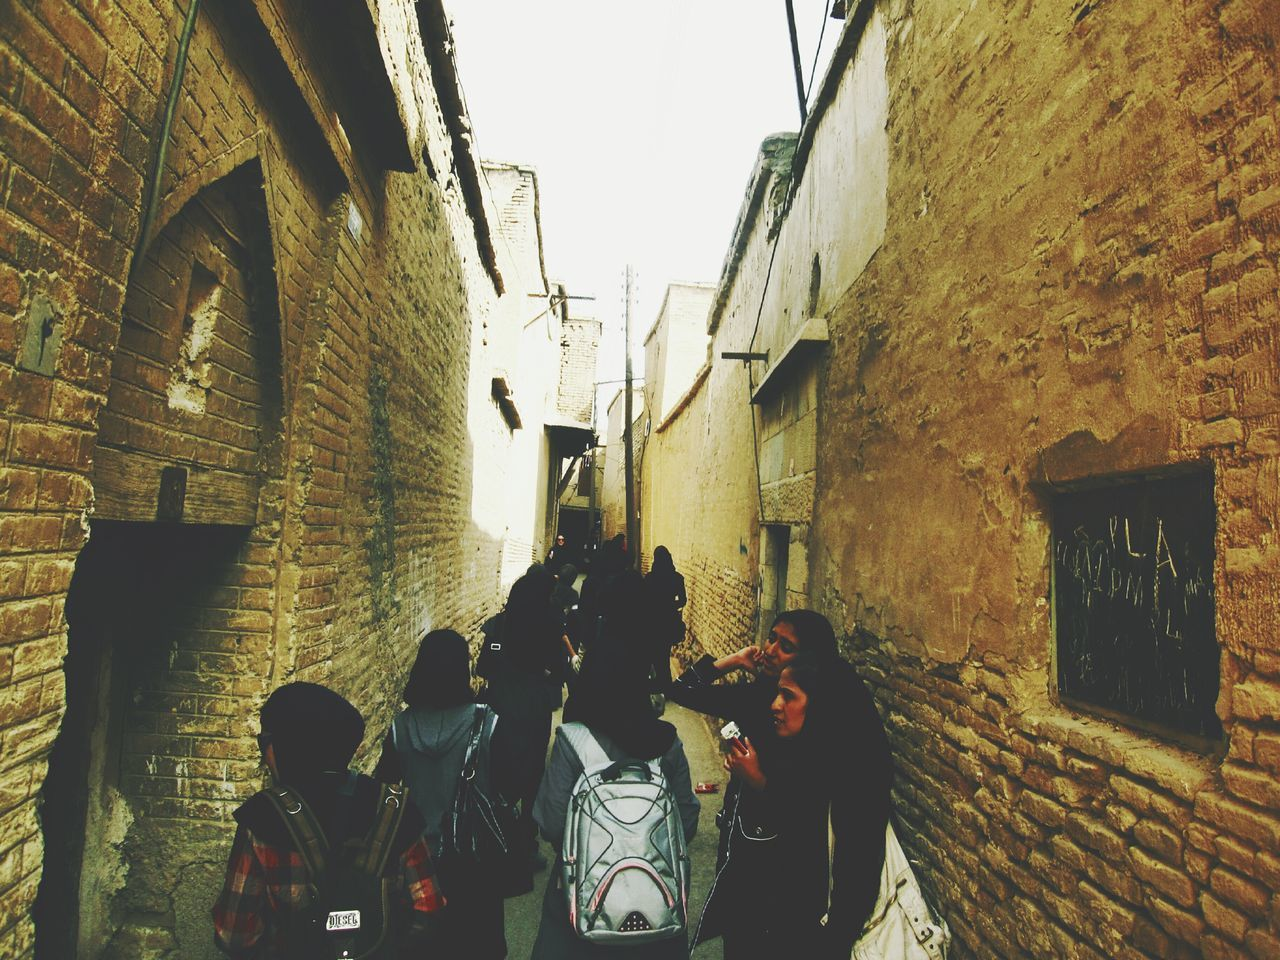 Persian Old Buildings EyeEm Best Shots Getting Inspired Old Popular Photos Telling Stories Differently The Architect - 2016 EyeEm Awards The Street Photographer - 2016 EyeEm Awards The Photojournalist - 2016 EyeEm Awards Shiraz🍷 Iran♥